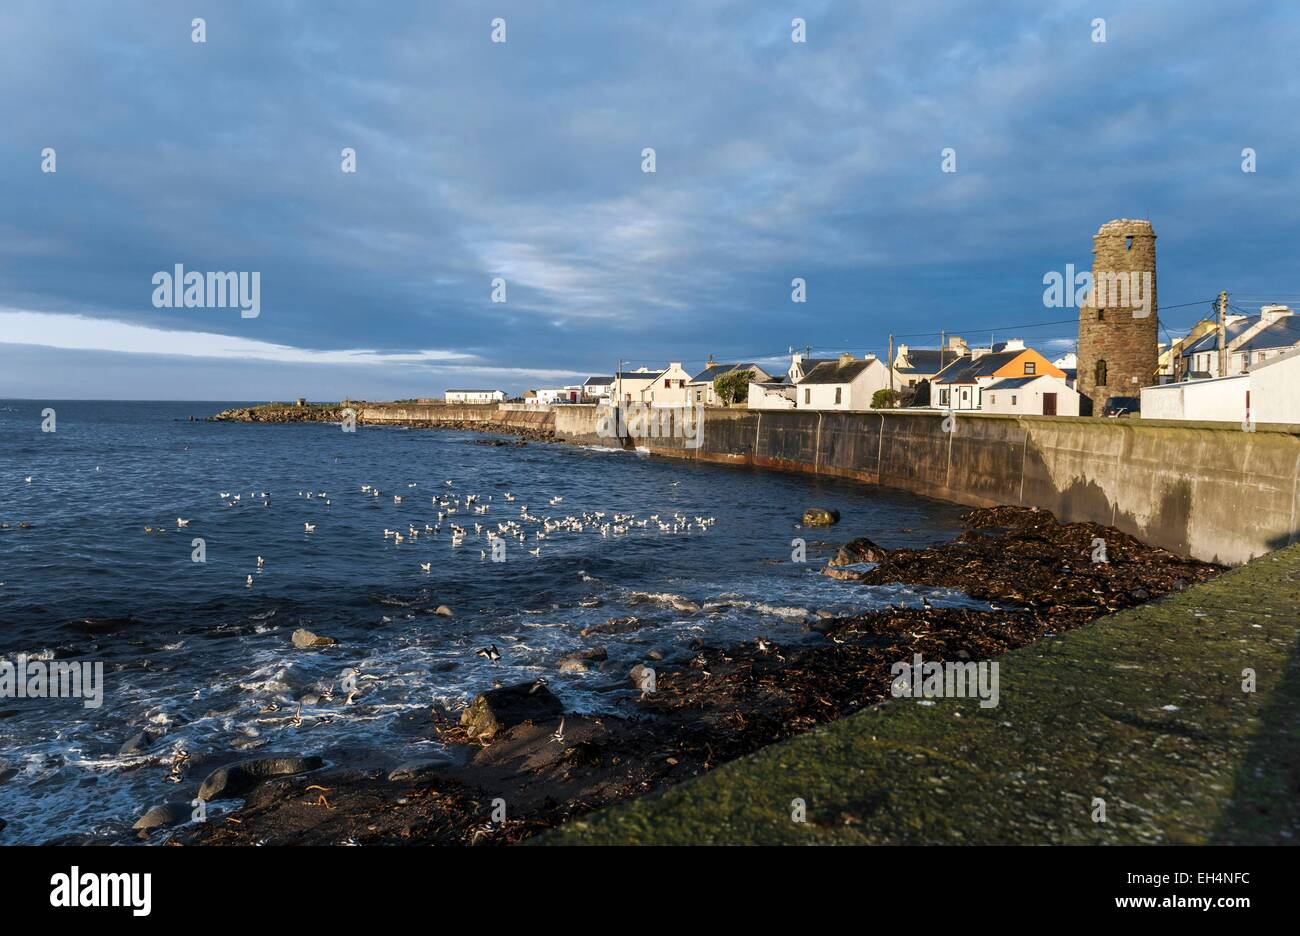 Ireland, Ulster, Donegal County, Tory island, West Town the main village - Stock Image